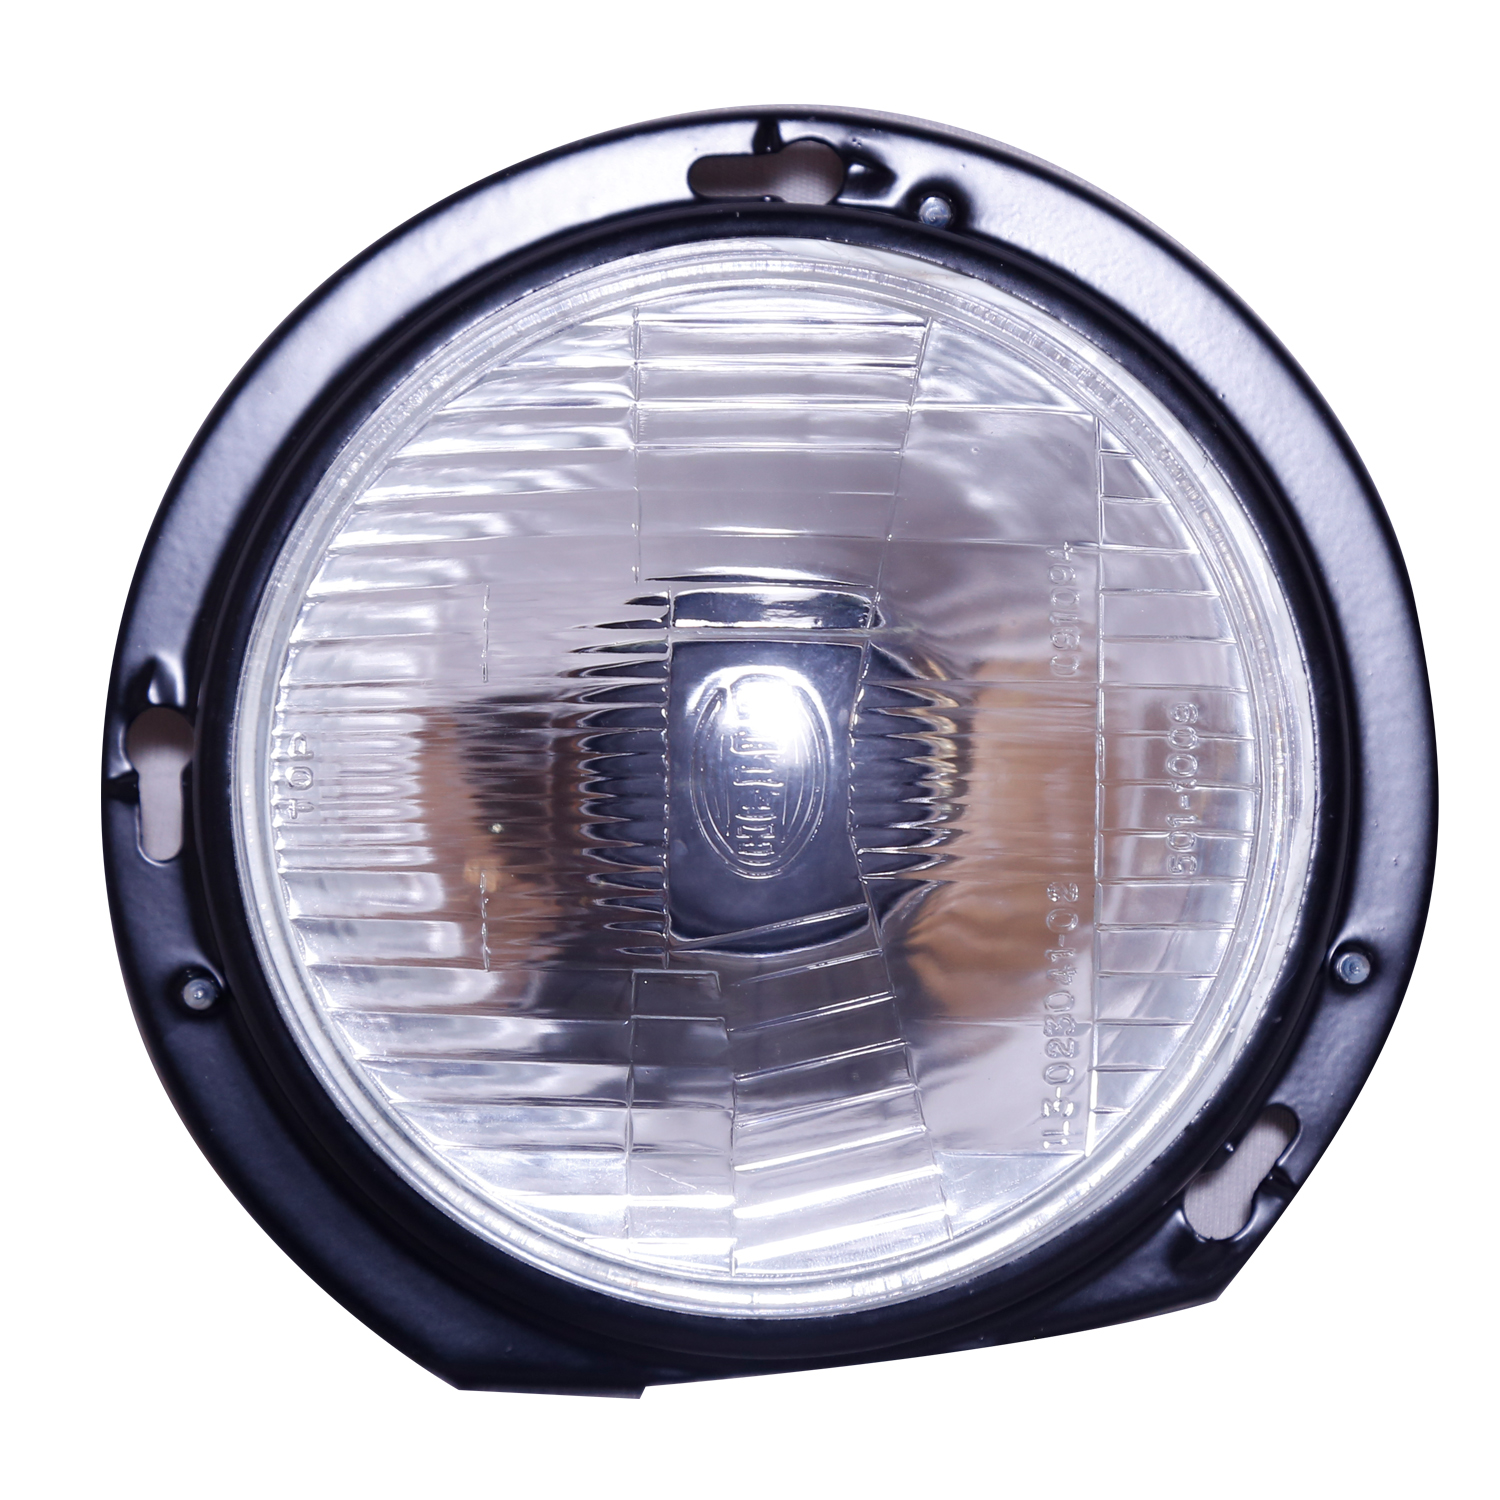 HELLA 327600121 Eicher Head Lamp P45 R